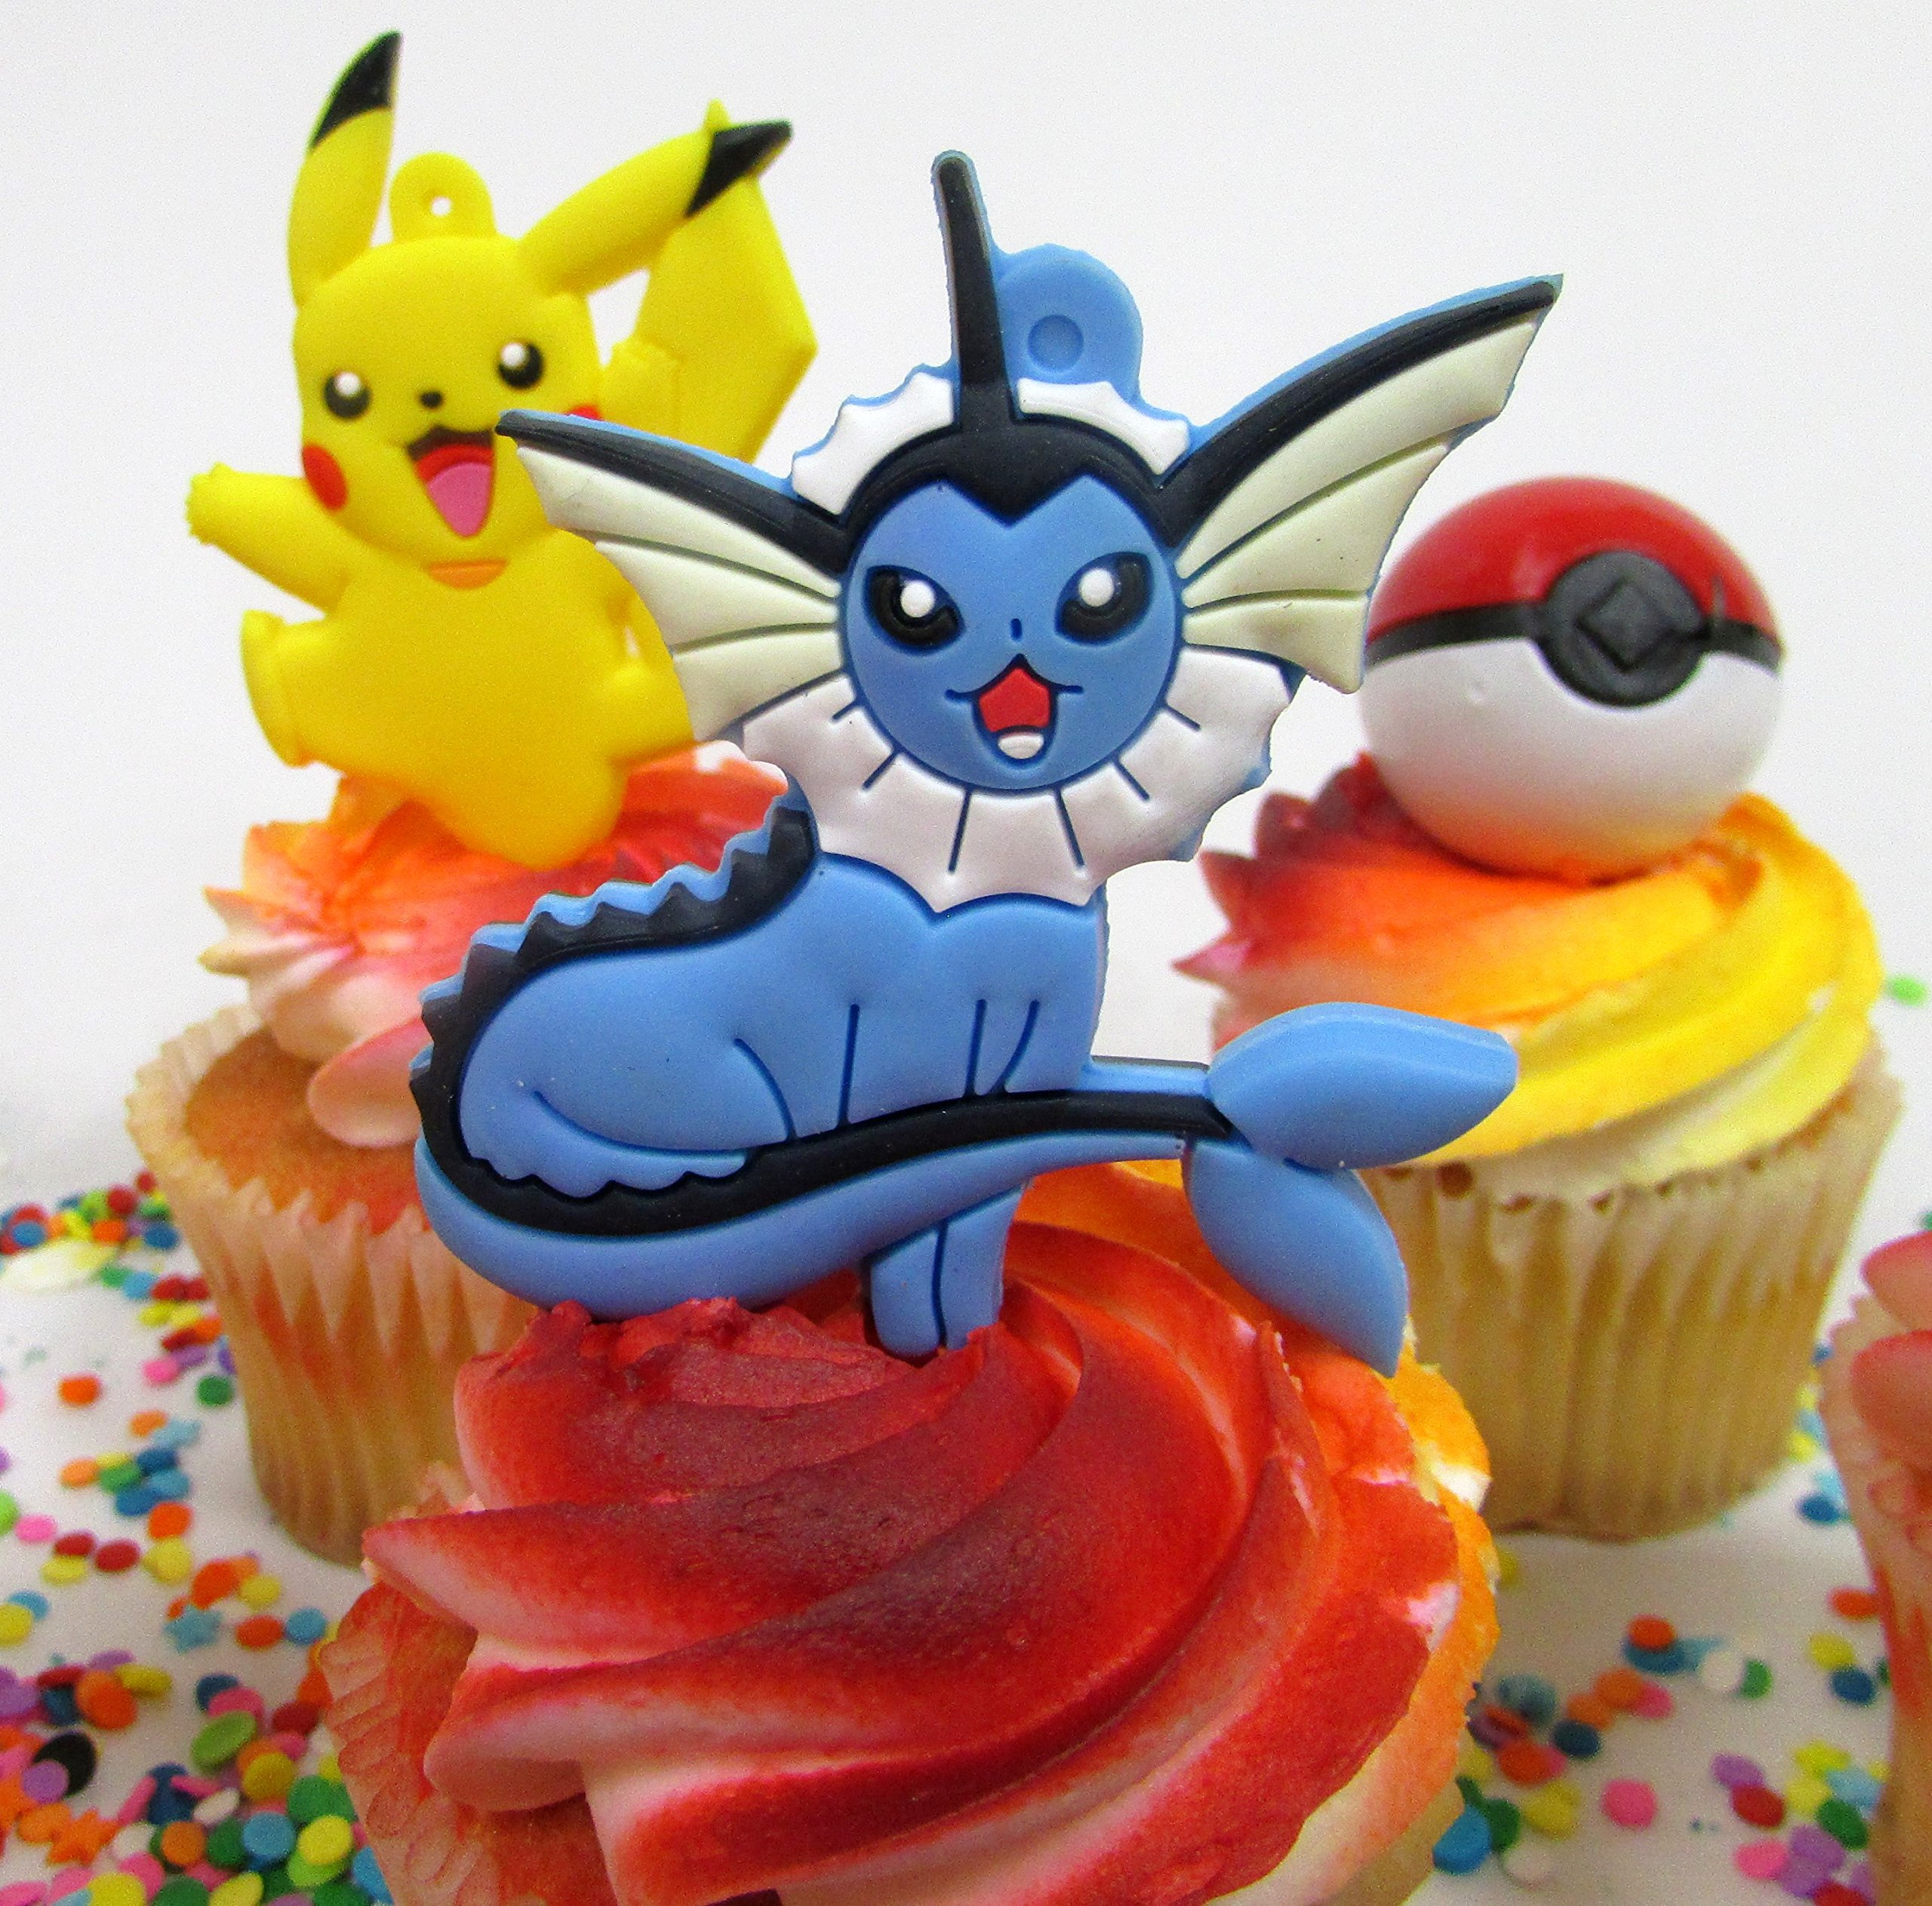 Pikachu and Friends Cupcake Topper Set with 6 Random Pocketmonster Characters and 6 Poke Balls by Cupcake Topper (Image #5)